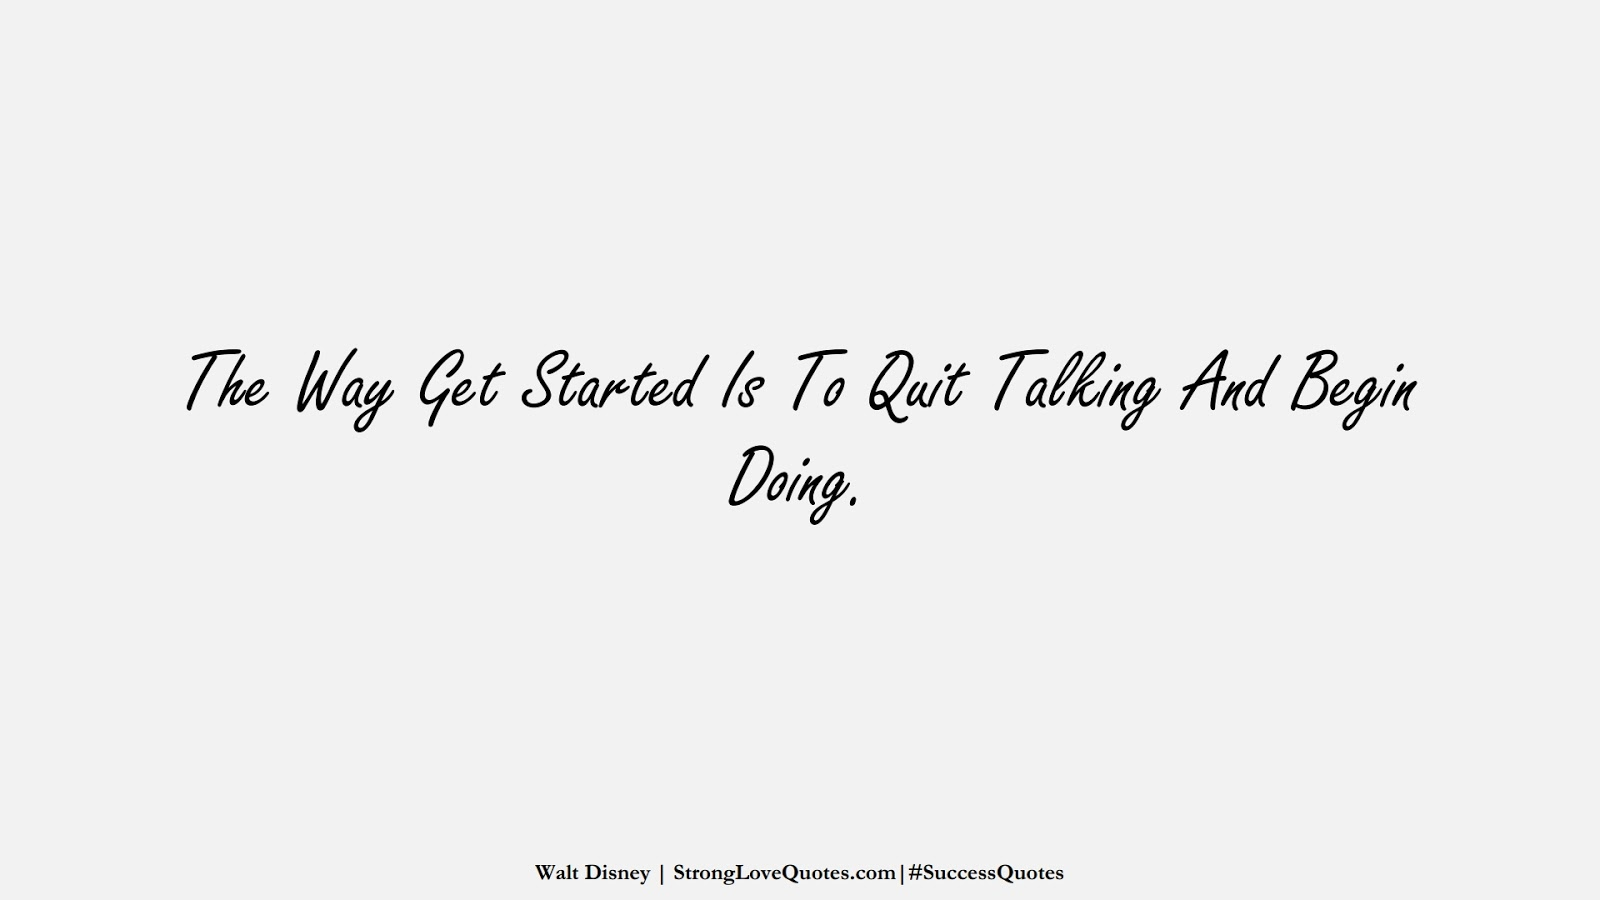 The Way Get Started Is To Quit Talking And Begin Doing. (Walt Disney);  #SuccessQuotes